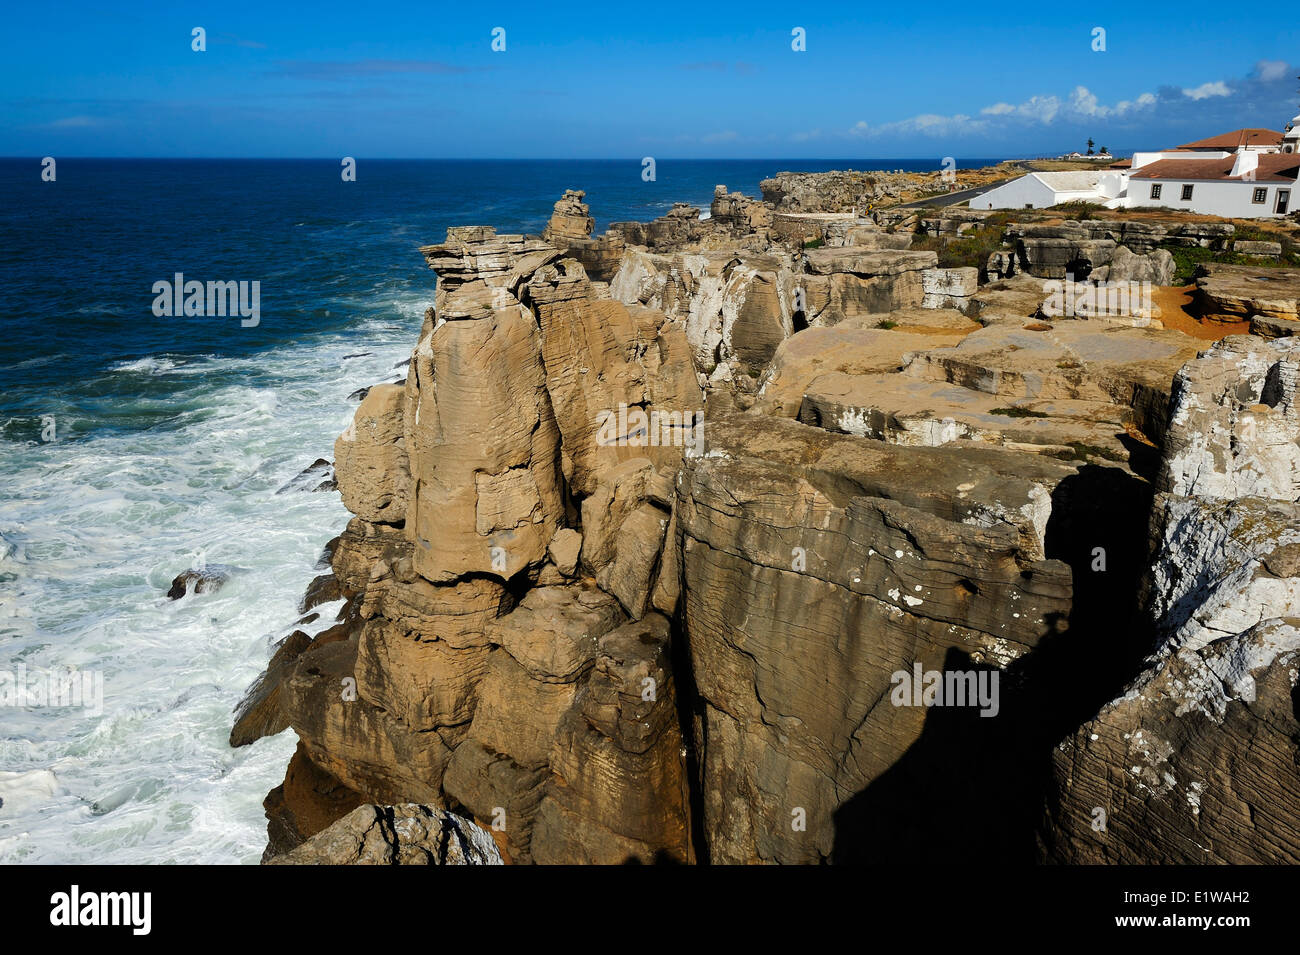 view of the coast of the Atlantic ocean, Peniche, Portugal - Stock Image